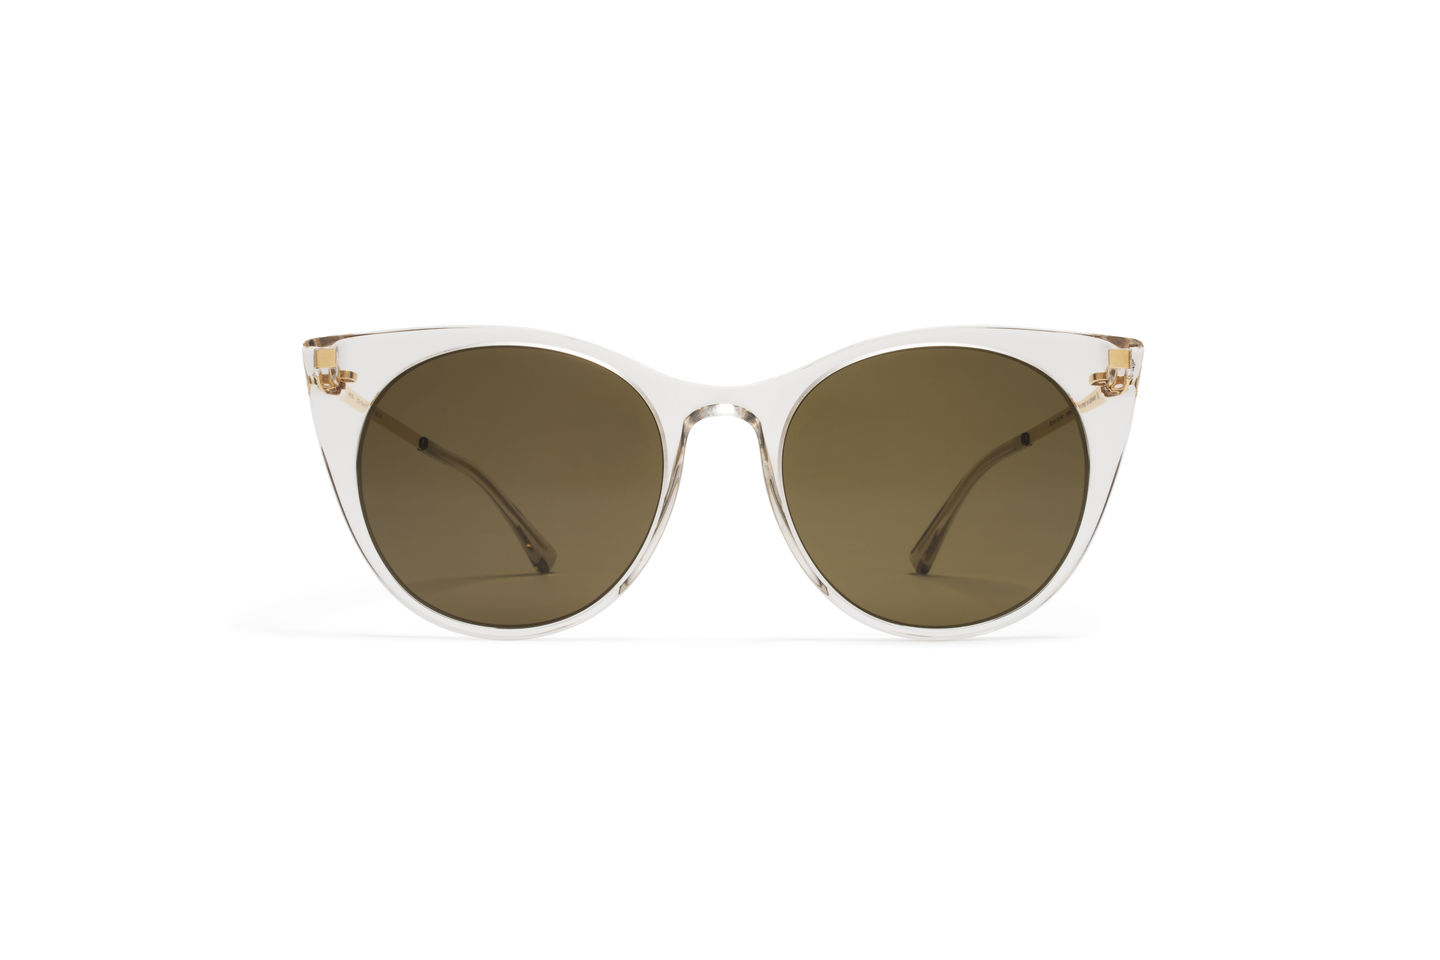 MYKITA acetate sunglasses DESNA in MYKITA JOURNAL's Tropical Edit